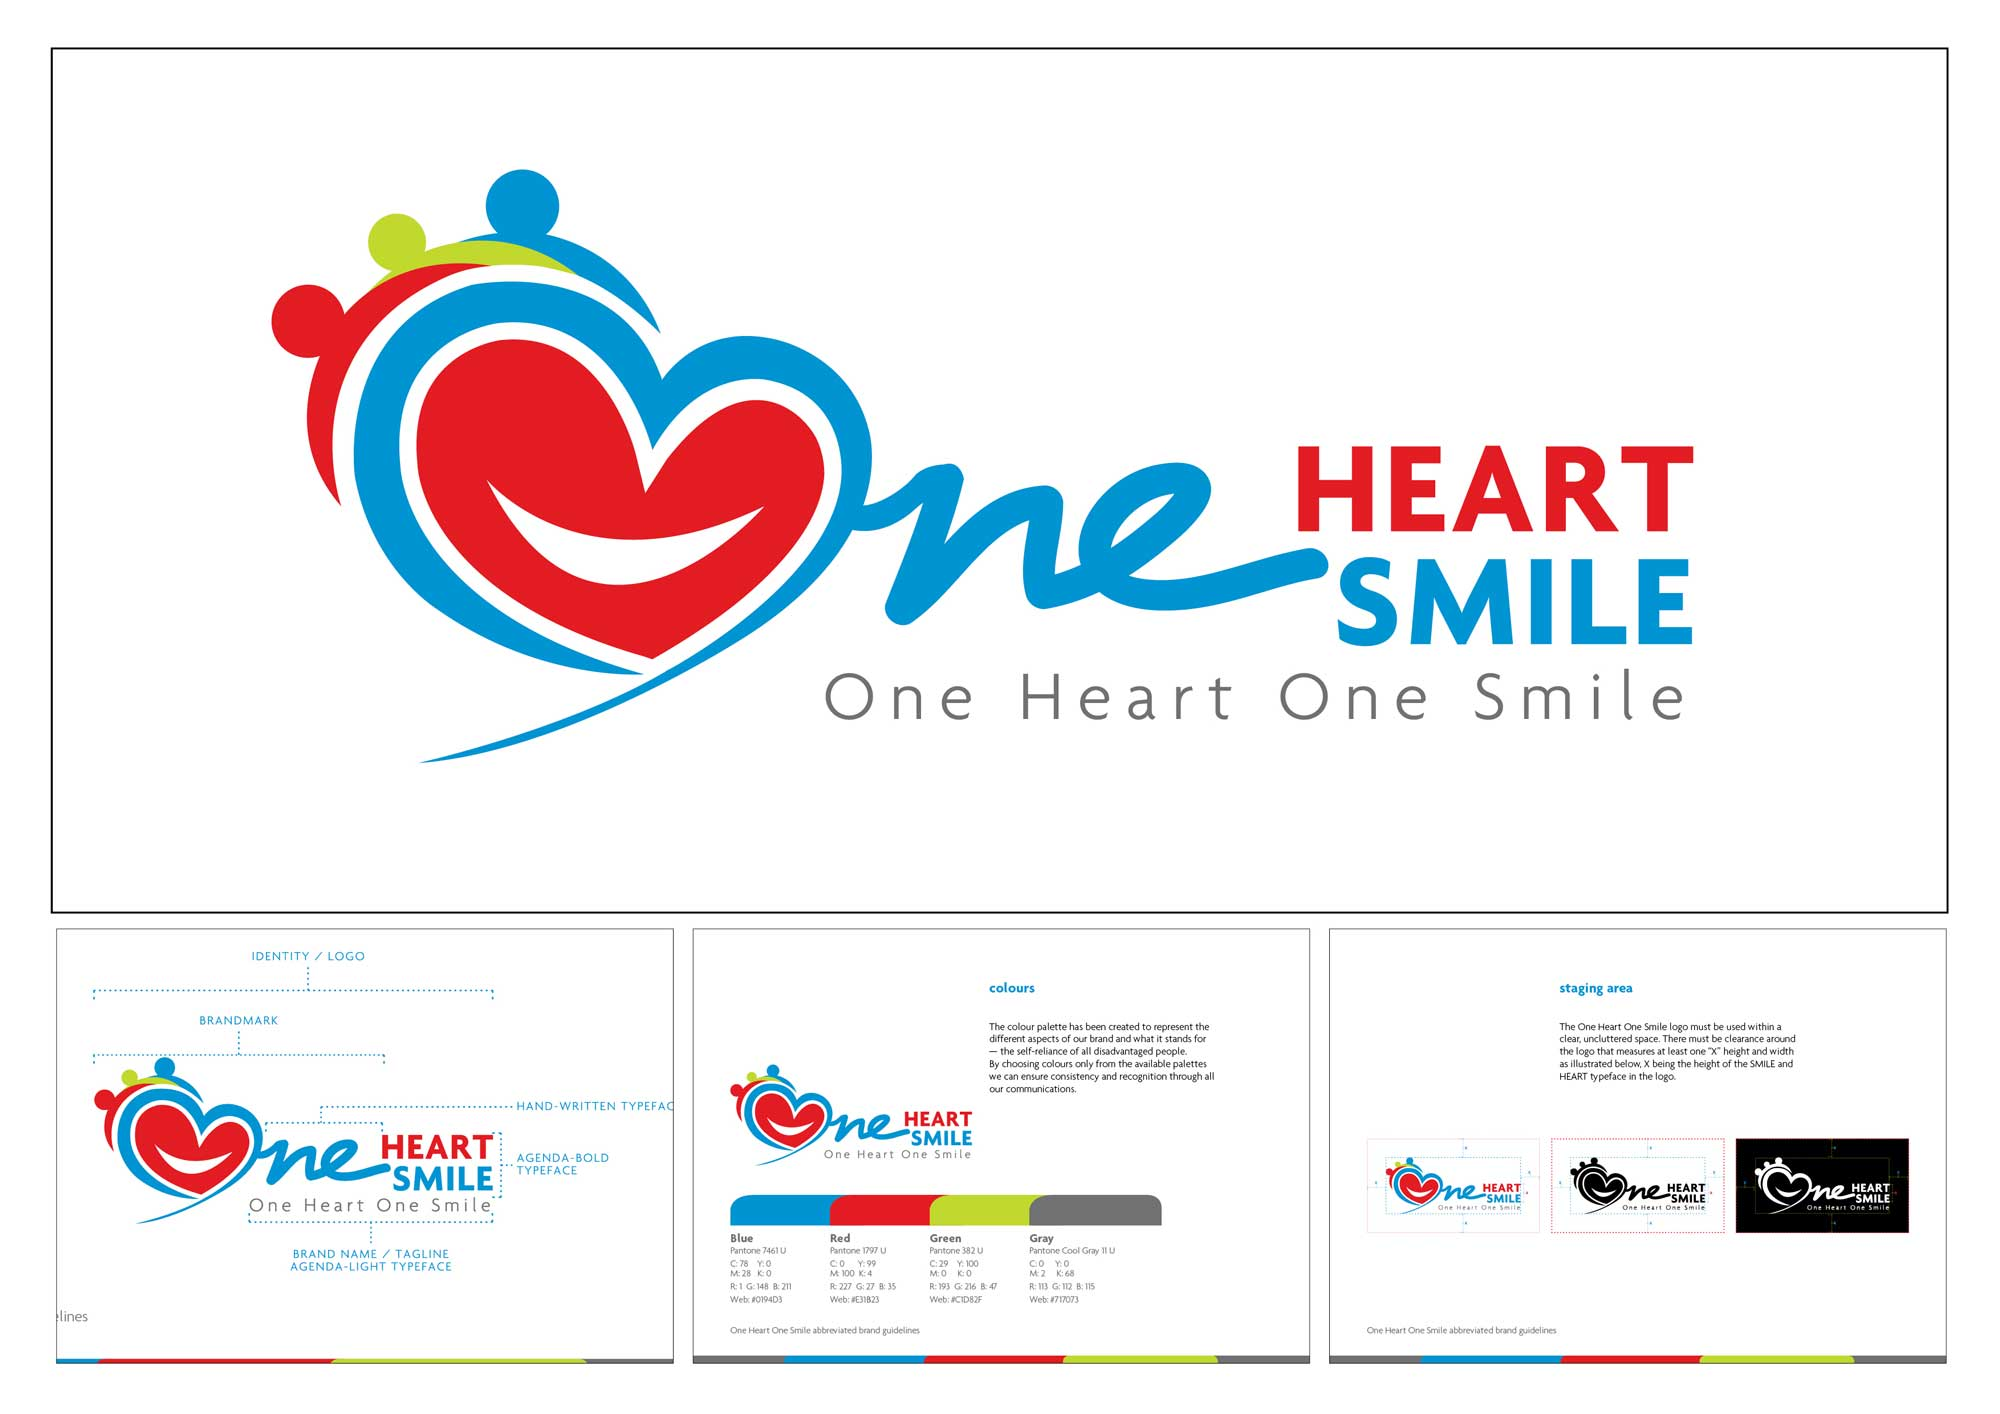 One Heart One Smile!